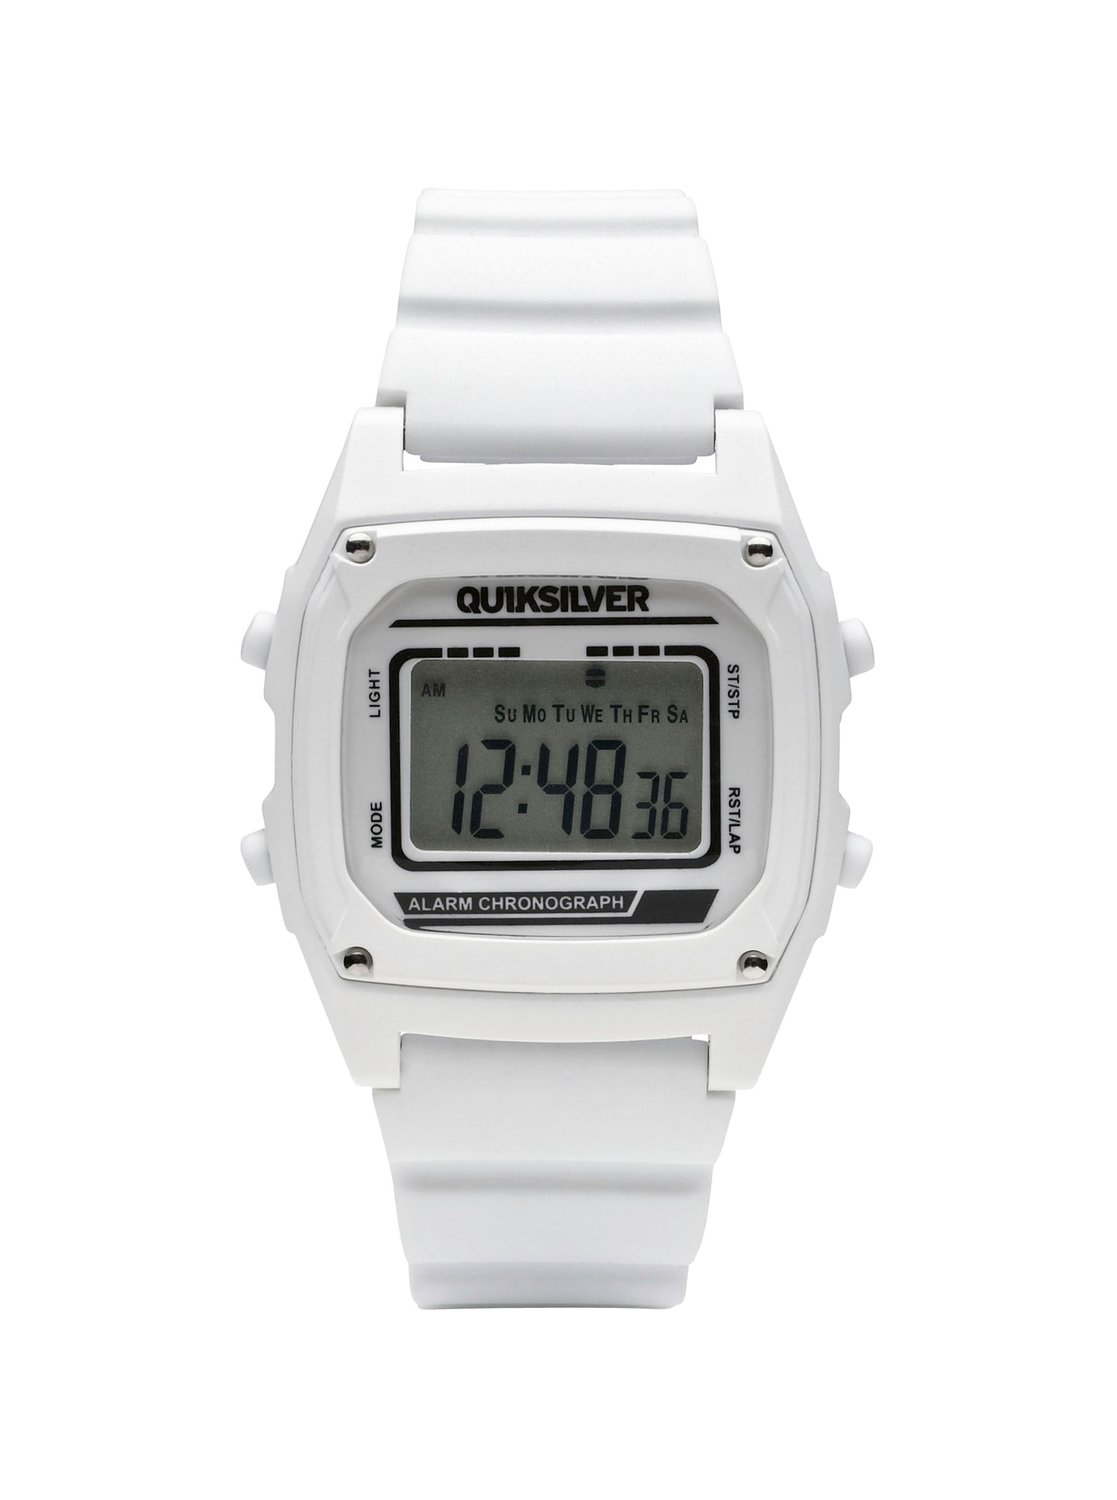 Short Circuit Watch Qwmd007 Quiksilver To 0